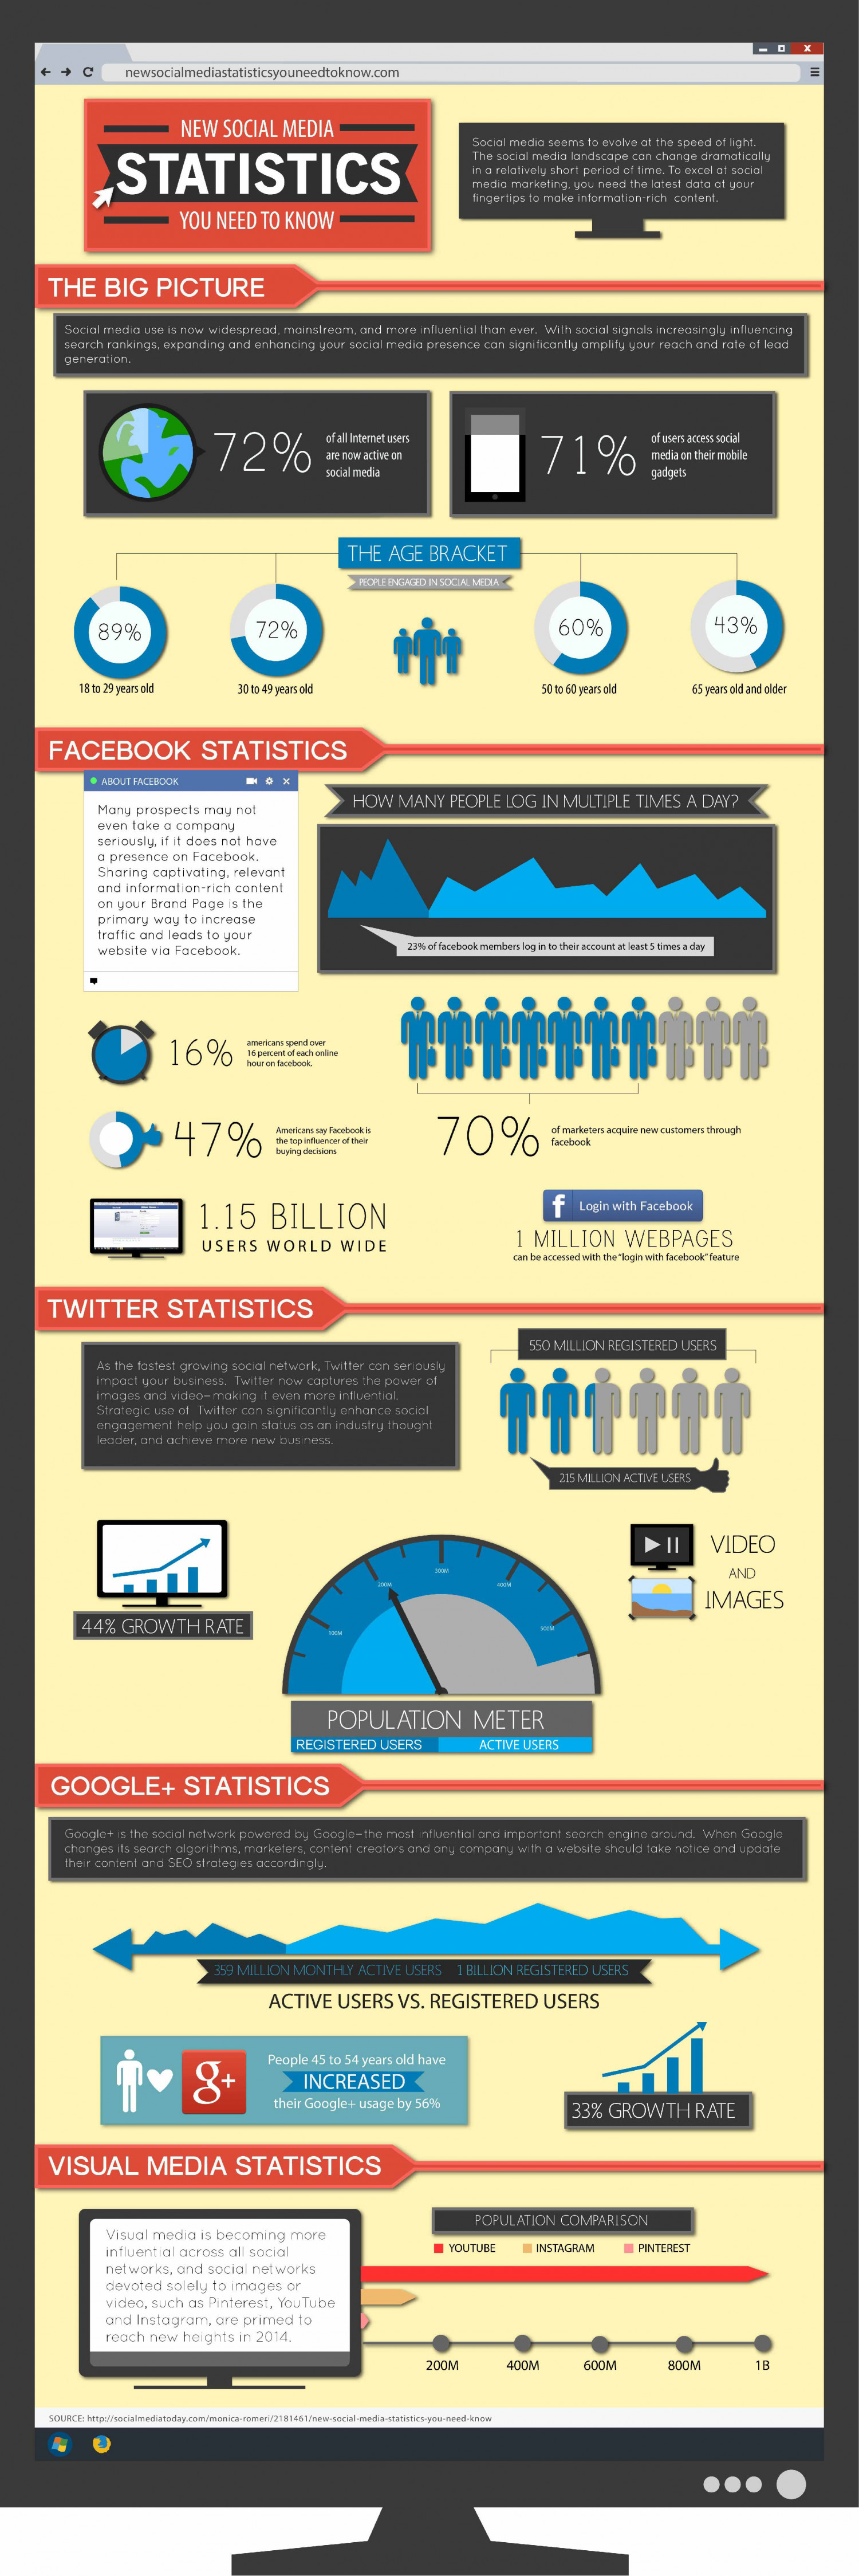 New Social Media Statistics You Need to Know Infographic